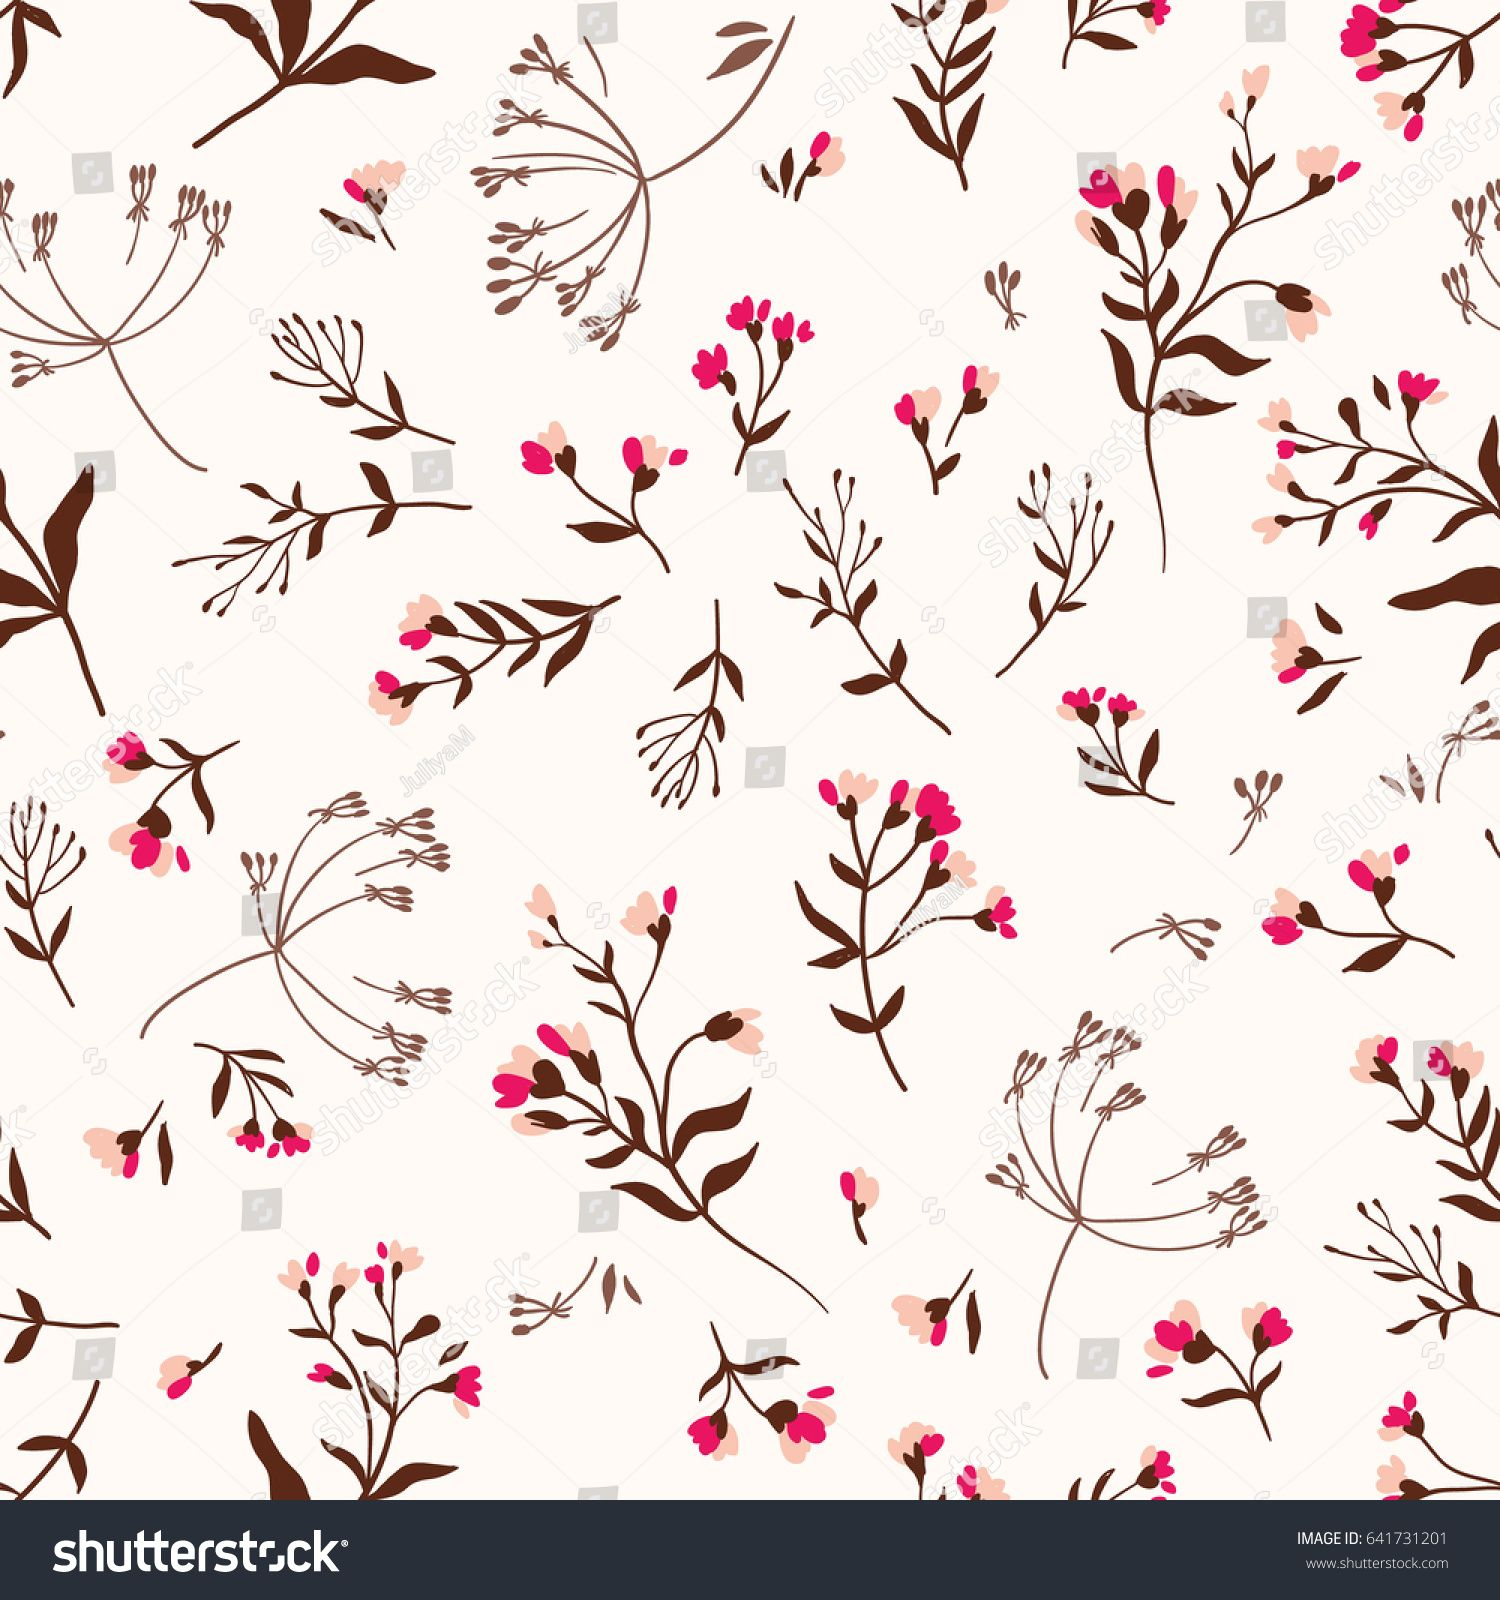 Seamless Cute Floral Vector Pattern Background Flower Pattern On White Background Floral Vector Seam Vector Pattern Illustration Art Design Watercolor Pattern